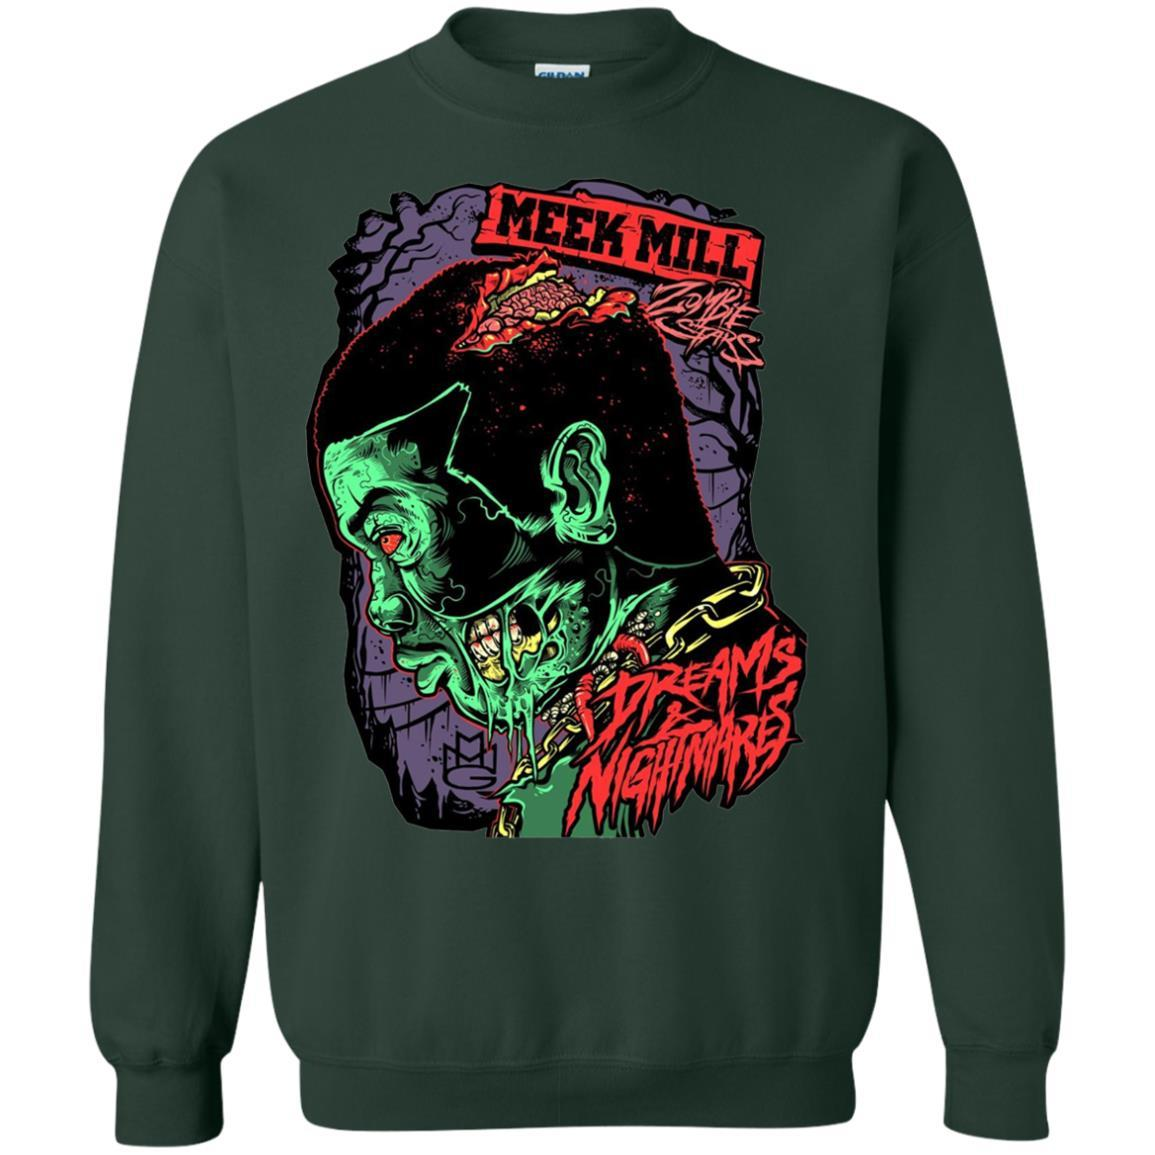 Meek Mill Zombie Tee Shirt Halloween - Crewneck Pullover Sweatshirt Forest Green / 5XL